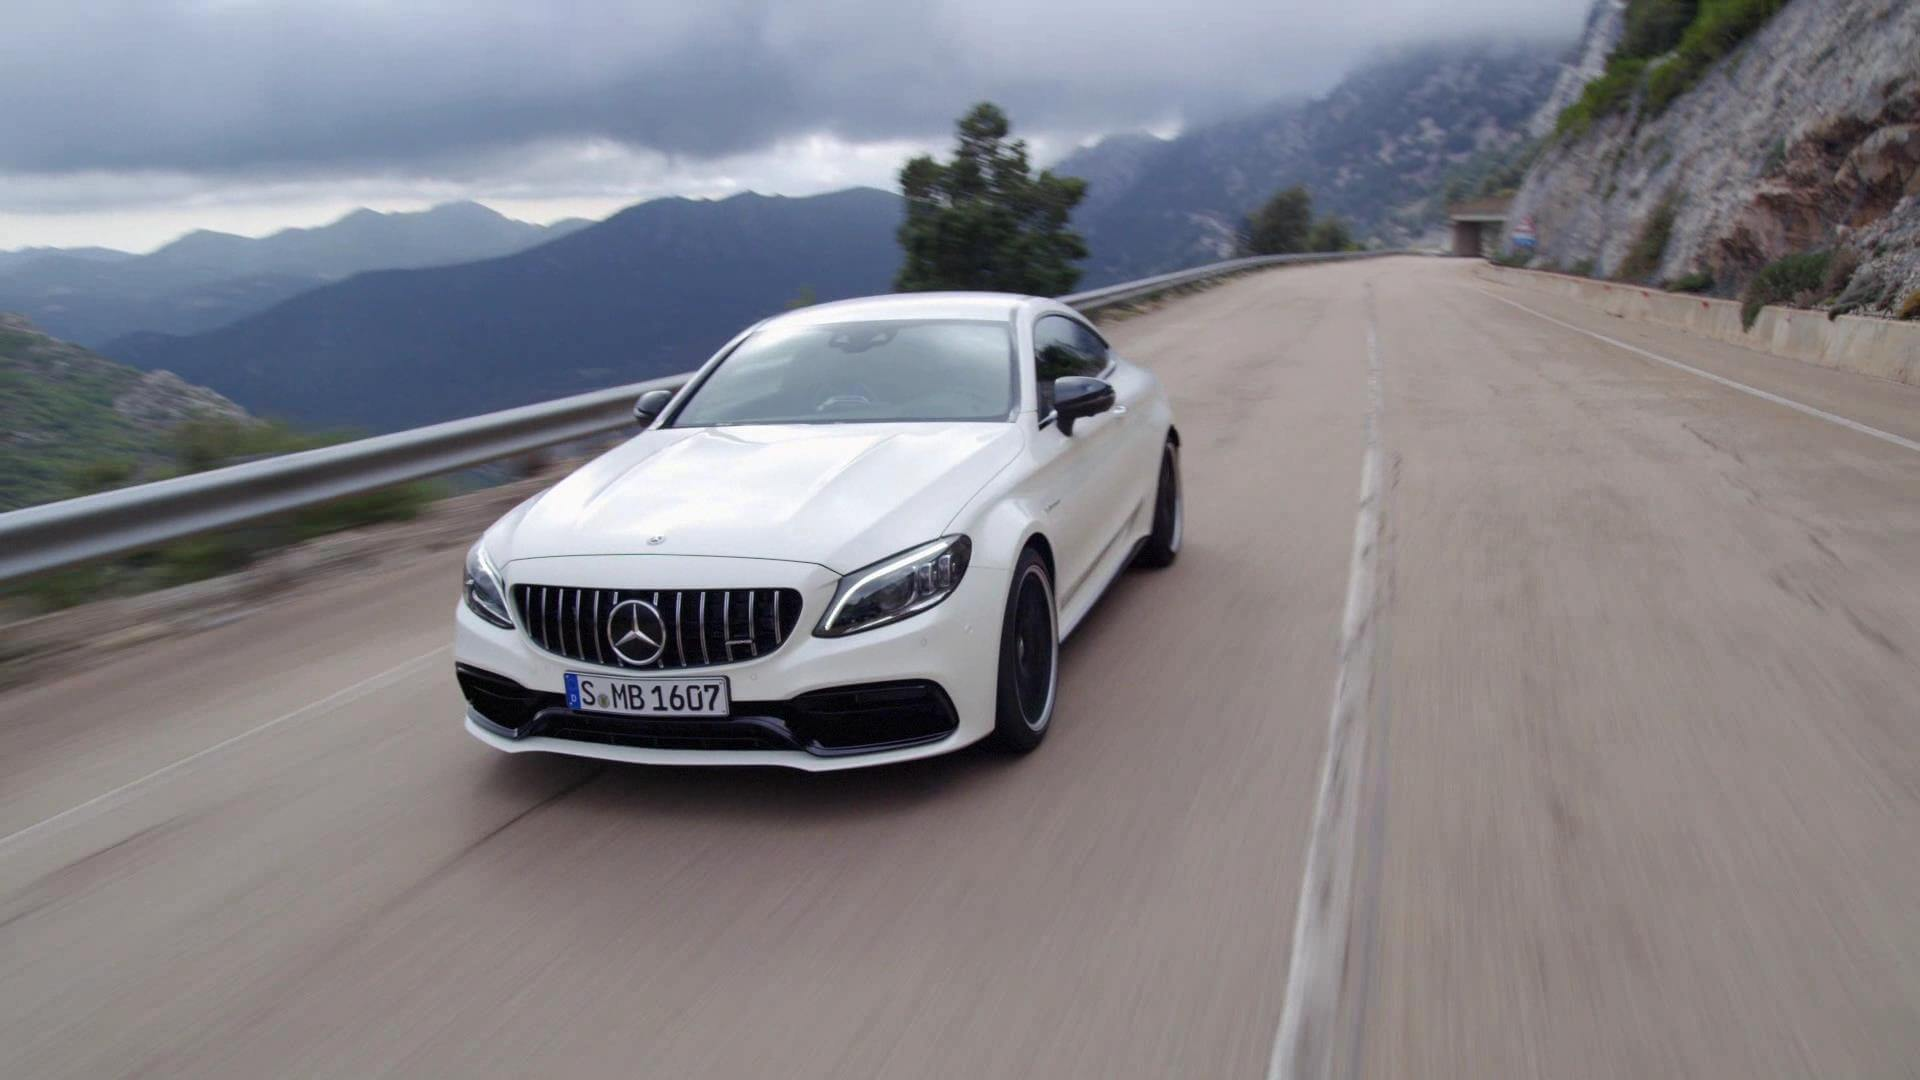 2019 Mercedes C63 AMG Review of Changes: What's New and